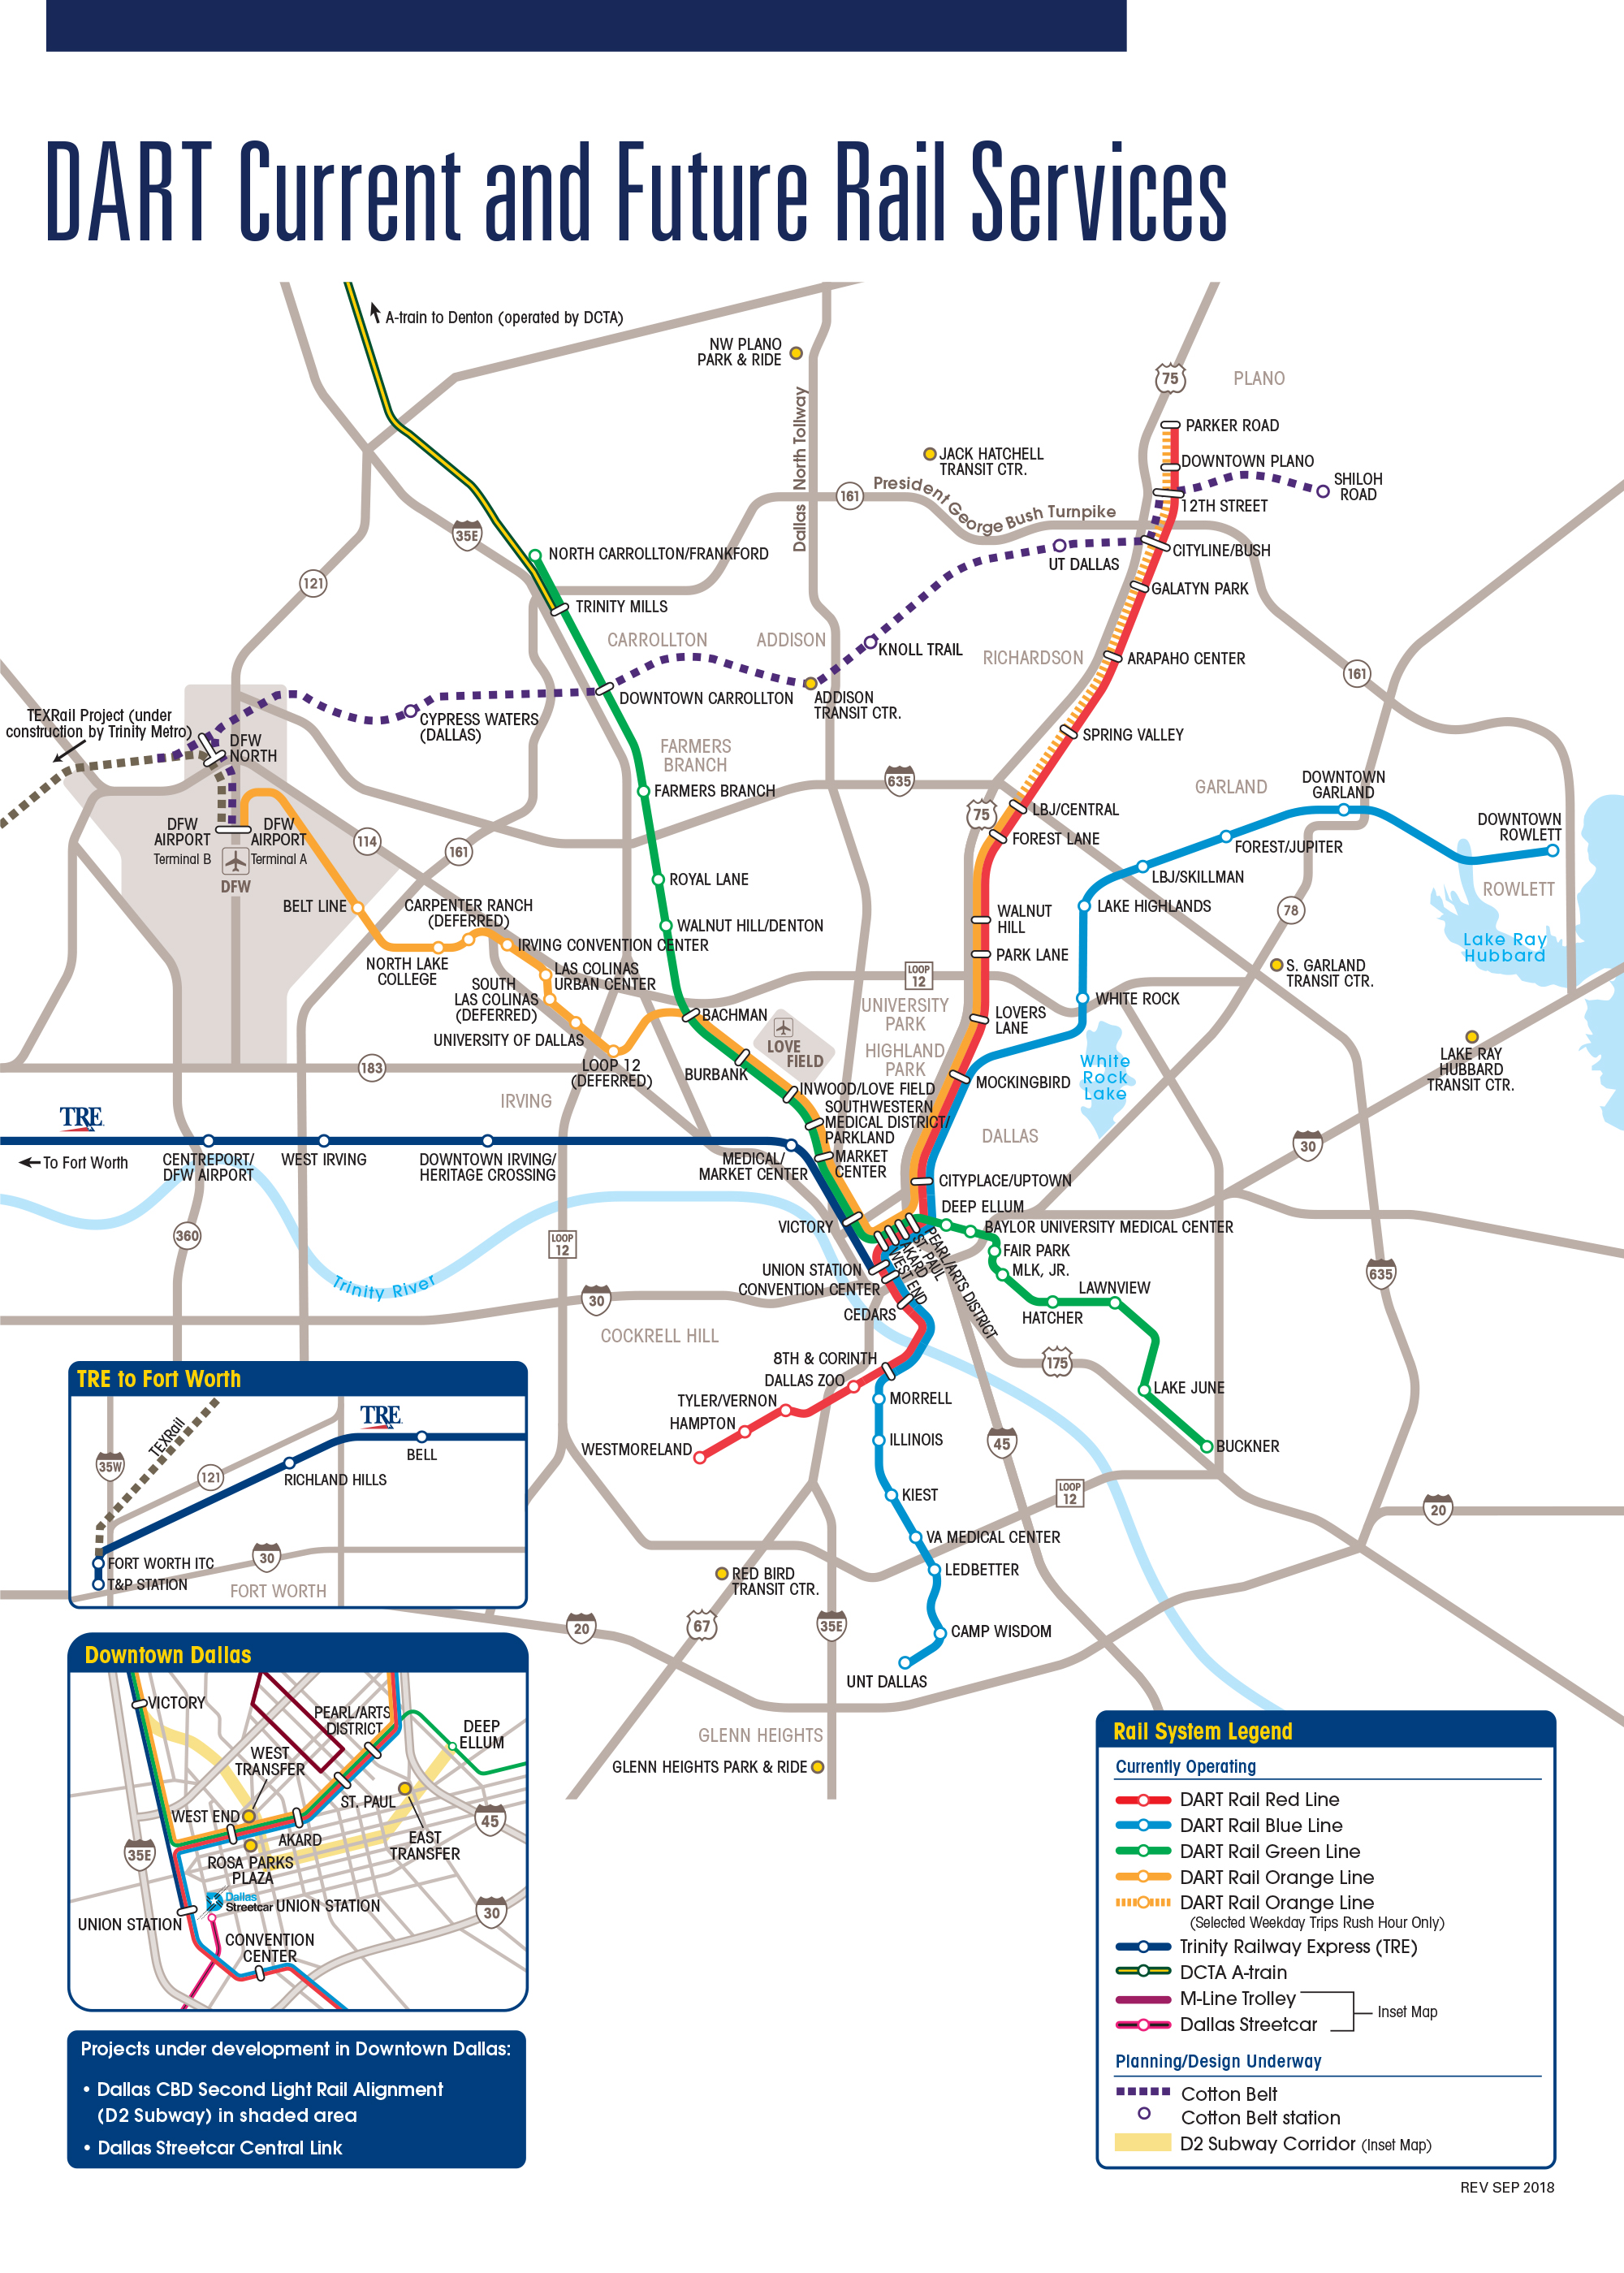 Dart Rail Map DART.  DART Current and Future Services Map Dart Rail Map